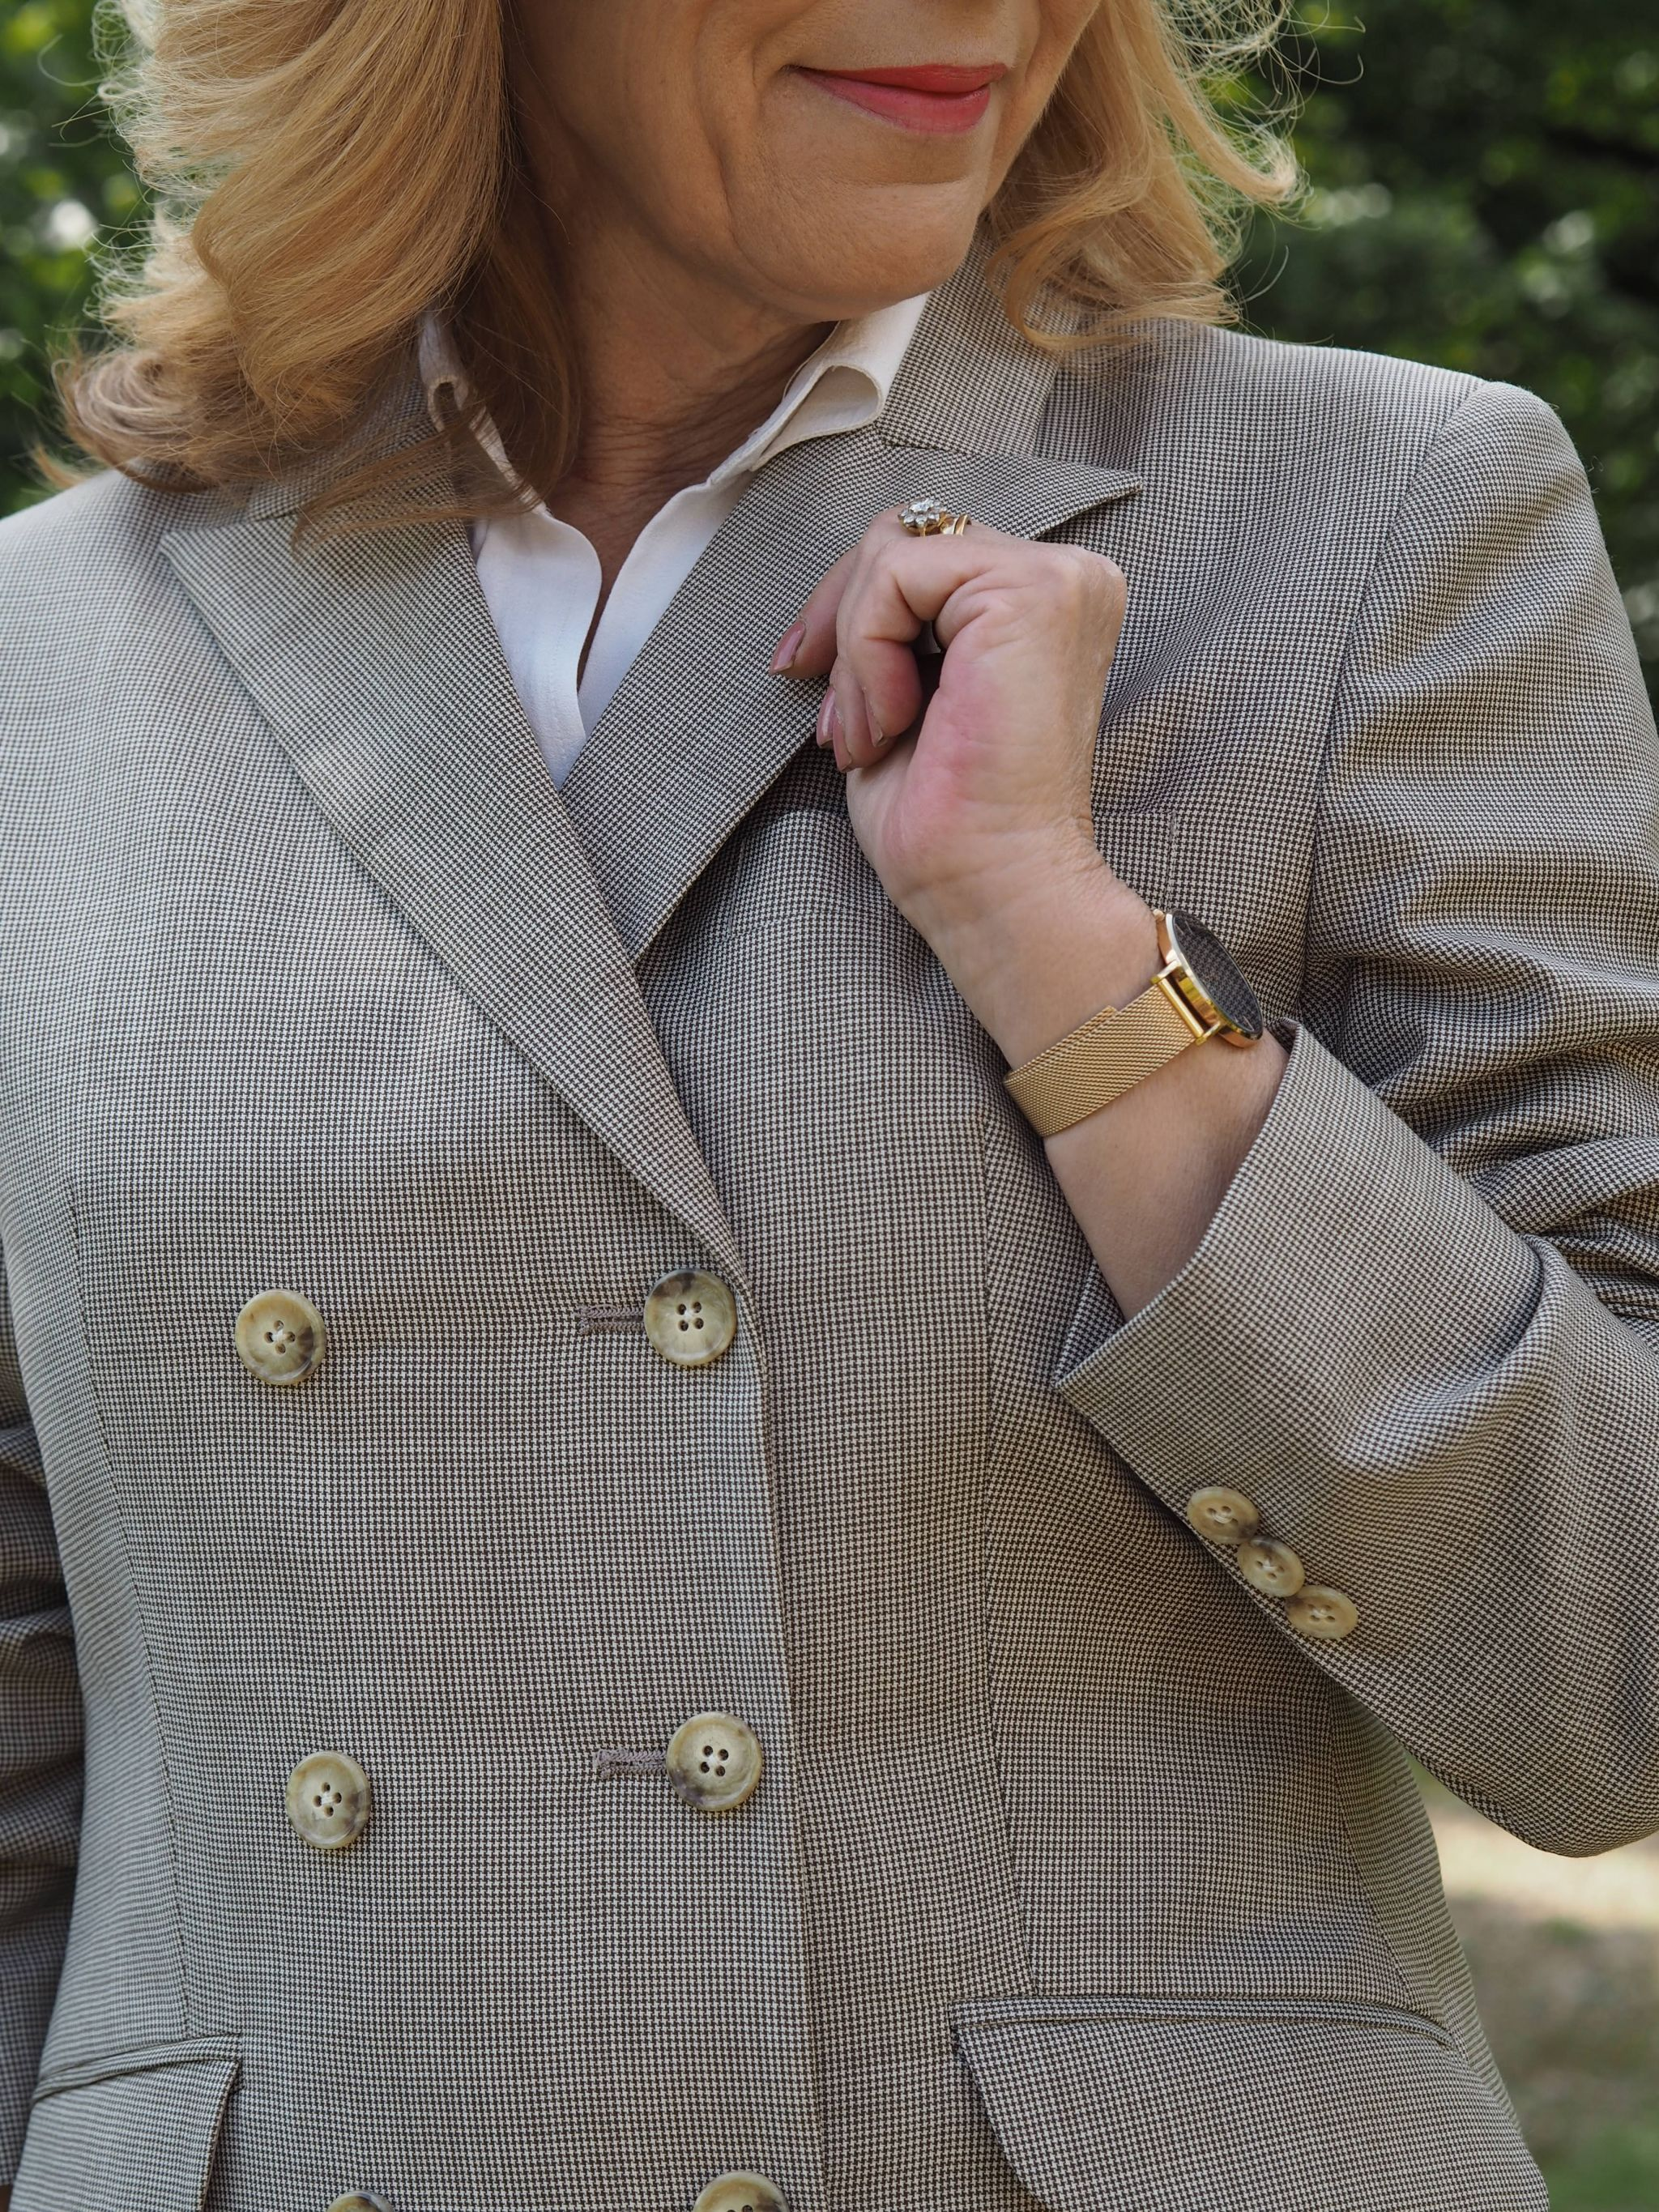 I'm featuring here today a made to measure blazer just for me!